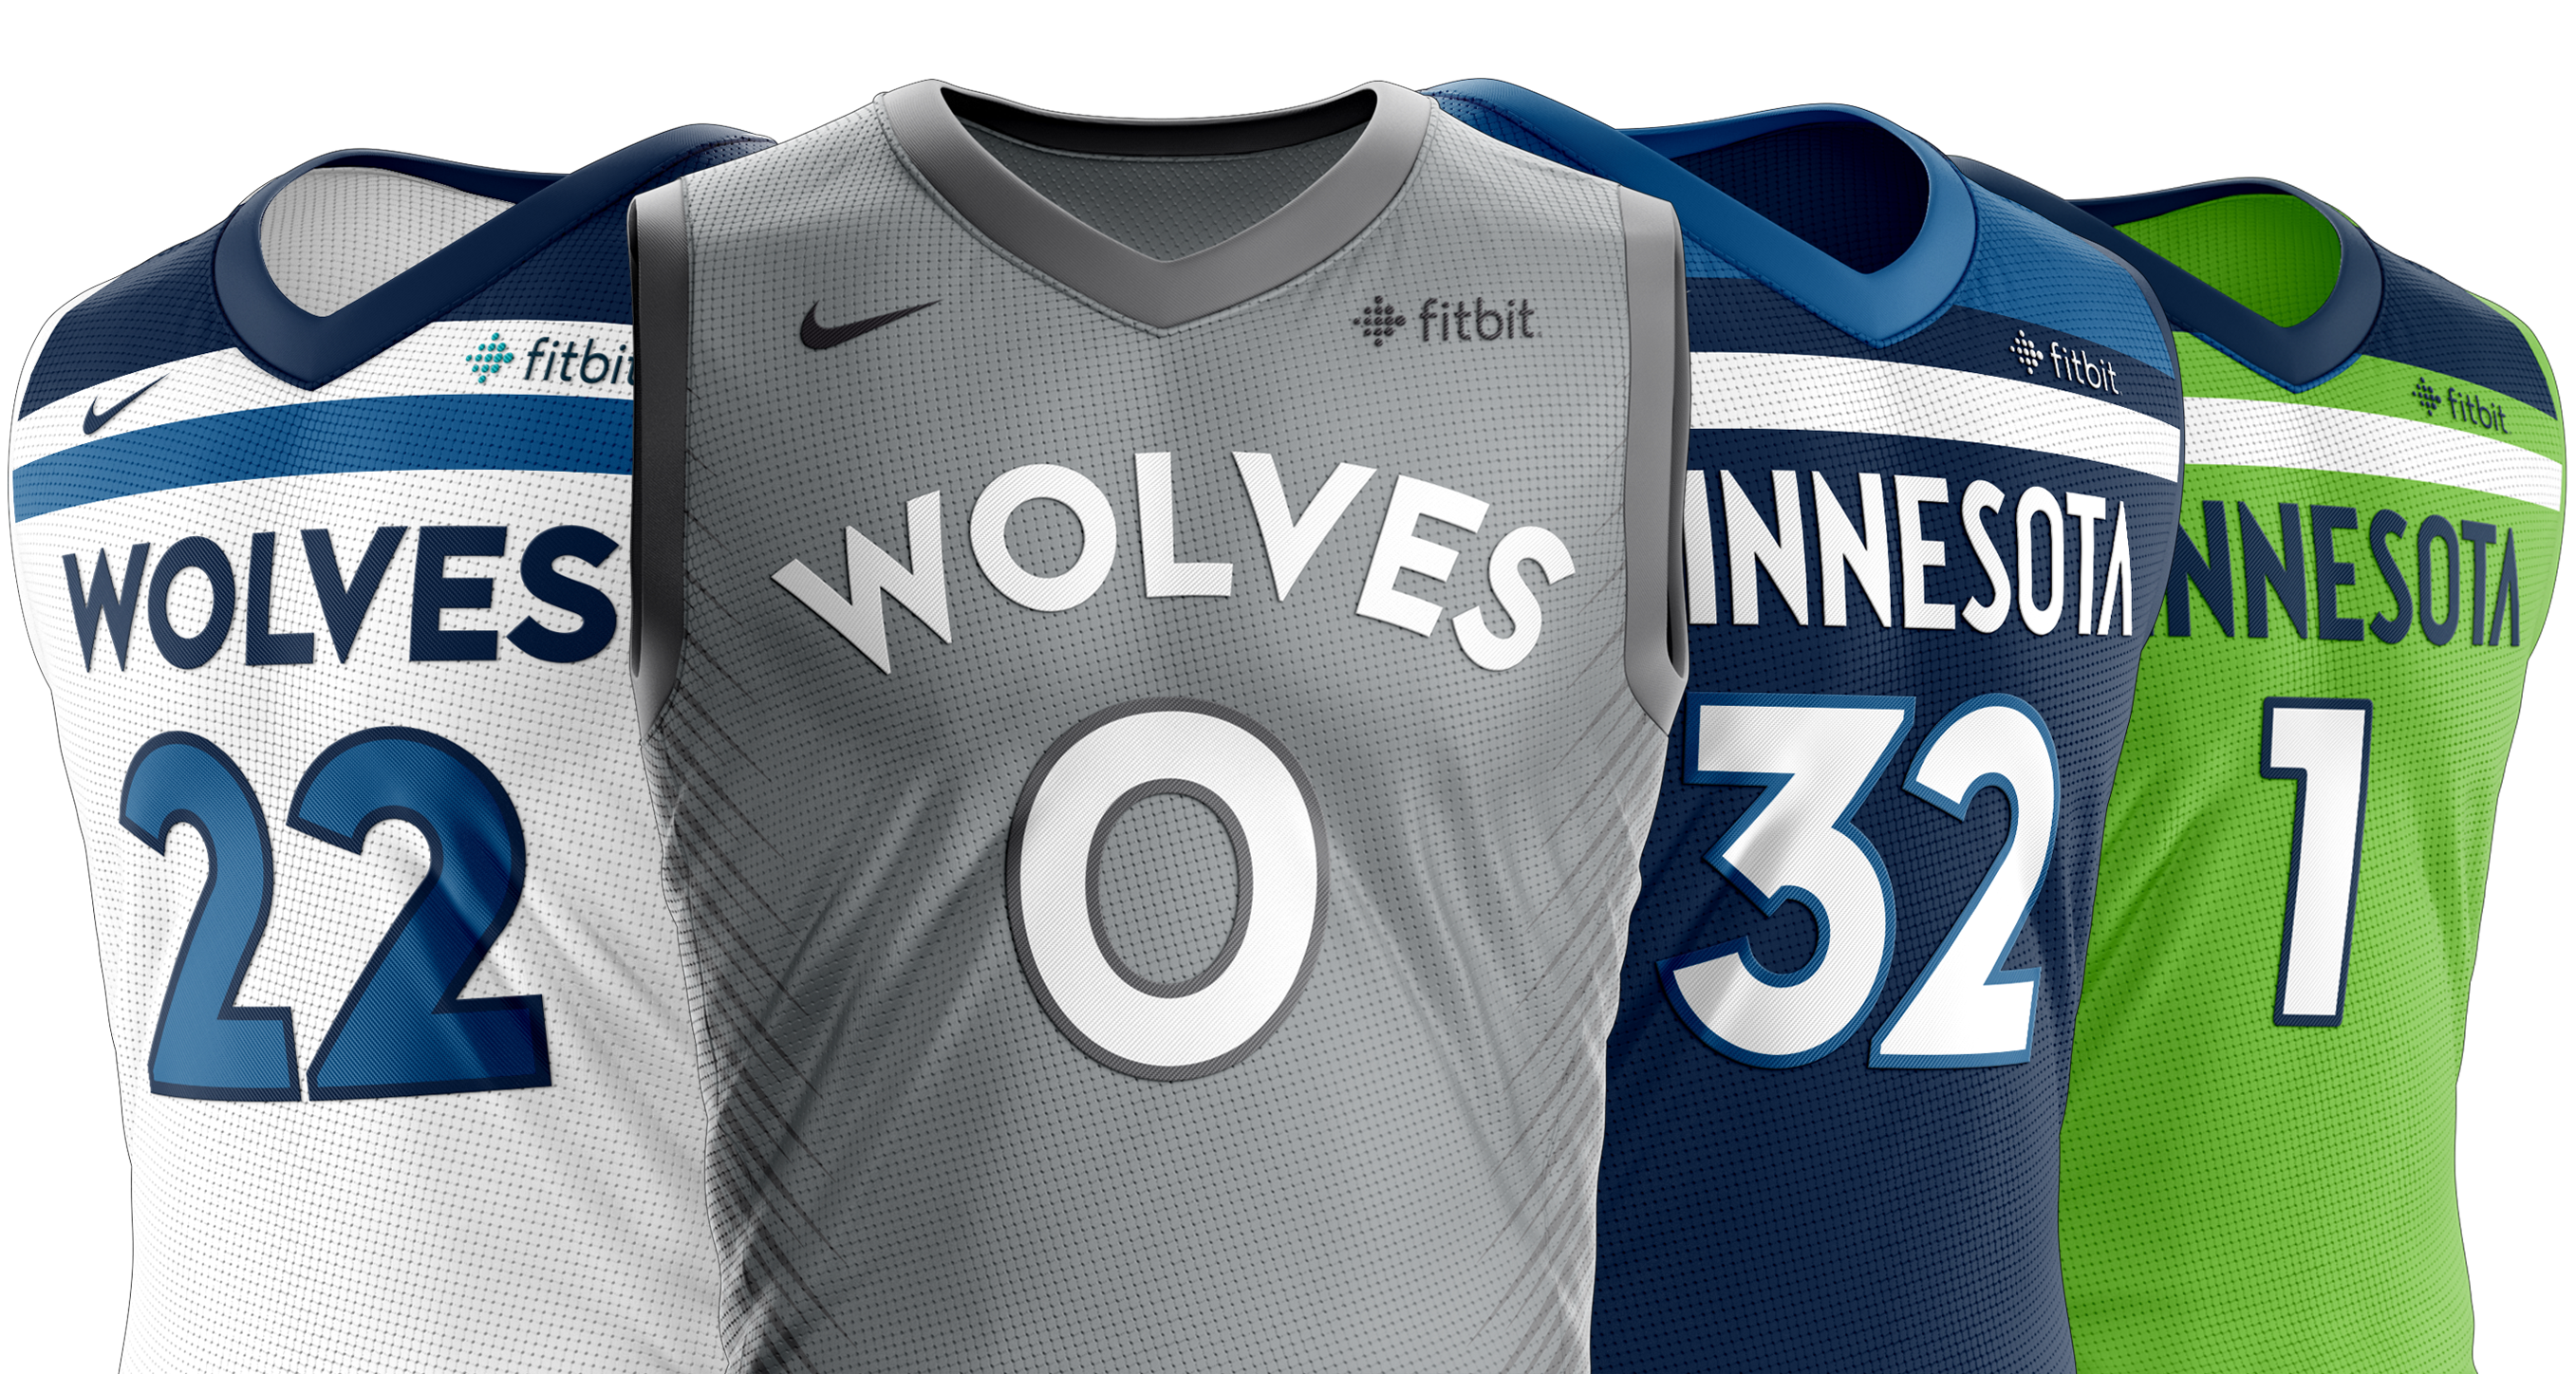 e6bafabc589e Introducing the Timberwolves New Uniforms for 2017-18.